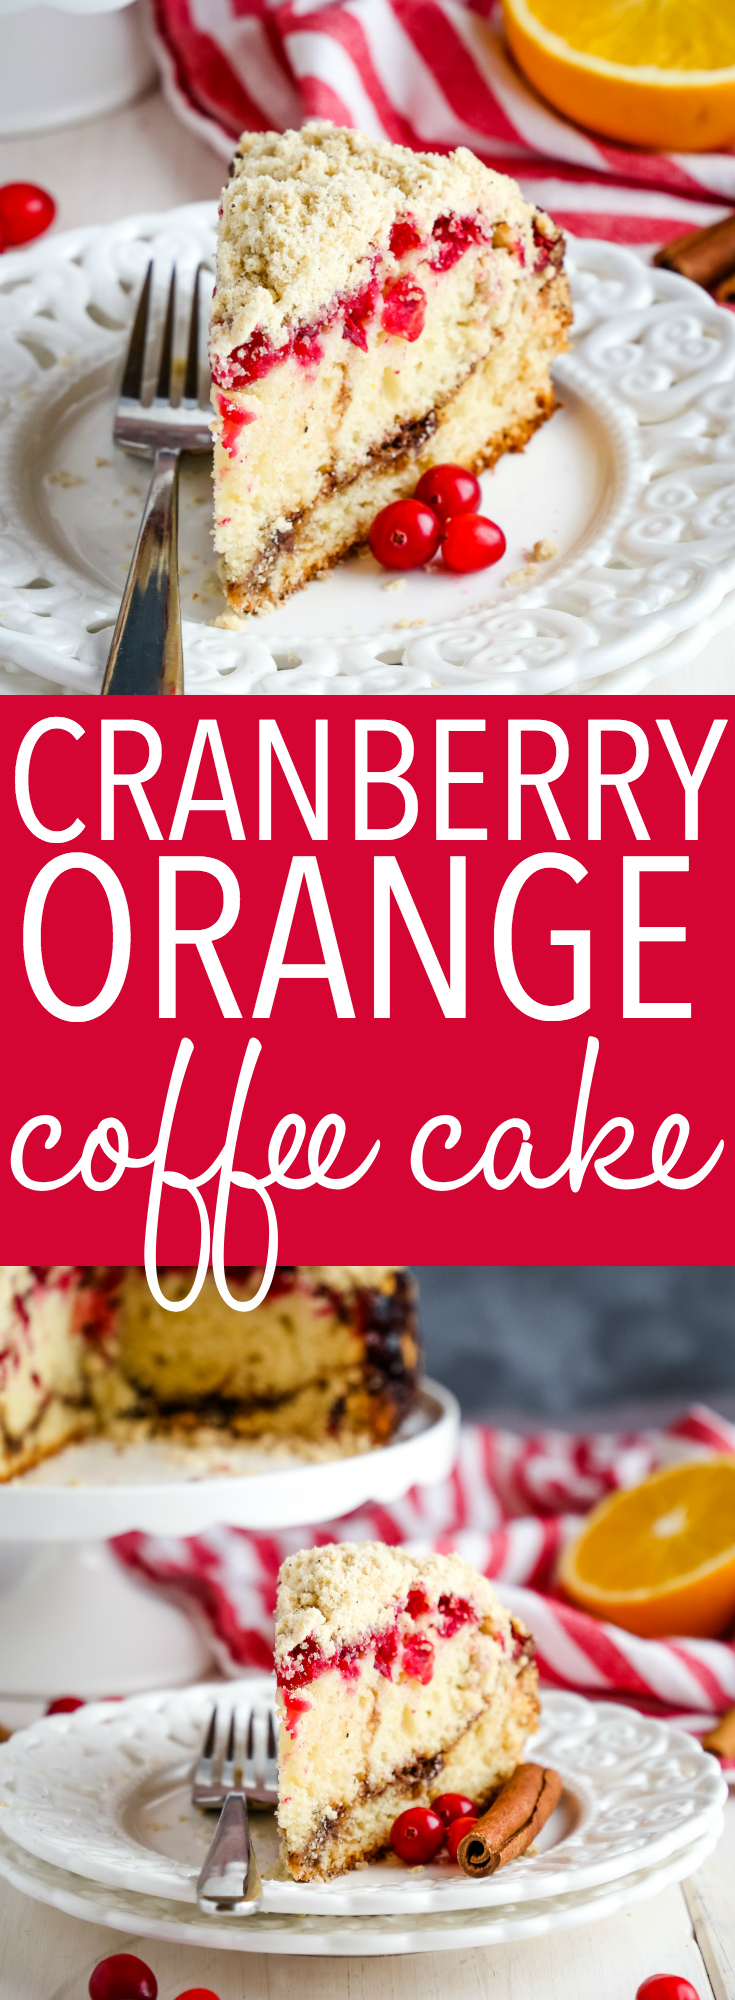 This Cranberry Orange Coffee Cake is perfect for all your holiday brunches! Made with fresh orange, cranberries and a delicious spiced crumble topping! Recipe from thebusybaker.ca! #holiday #brunch #dessert #snack #cake #baking #recipe #orange #cranberry #fresh #fruit #decadent #christmas #thanksgiving #foodblog via @busybakerblog